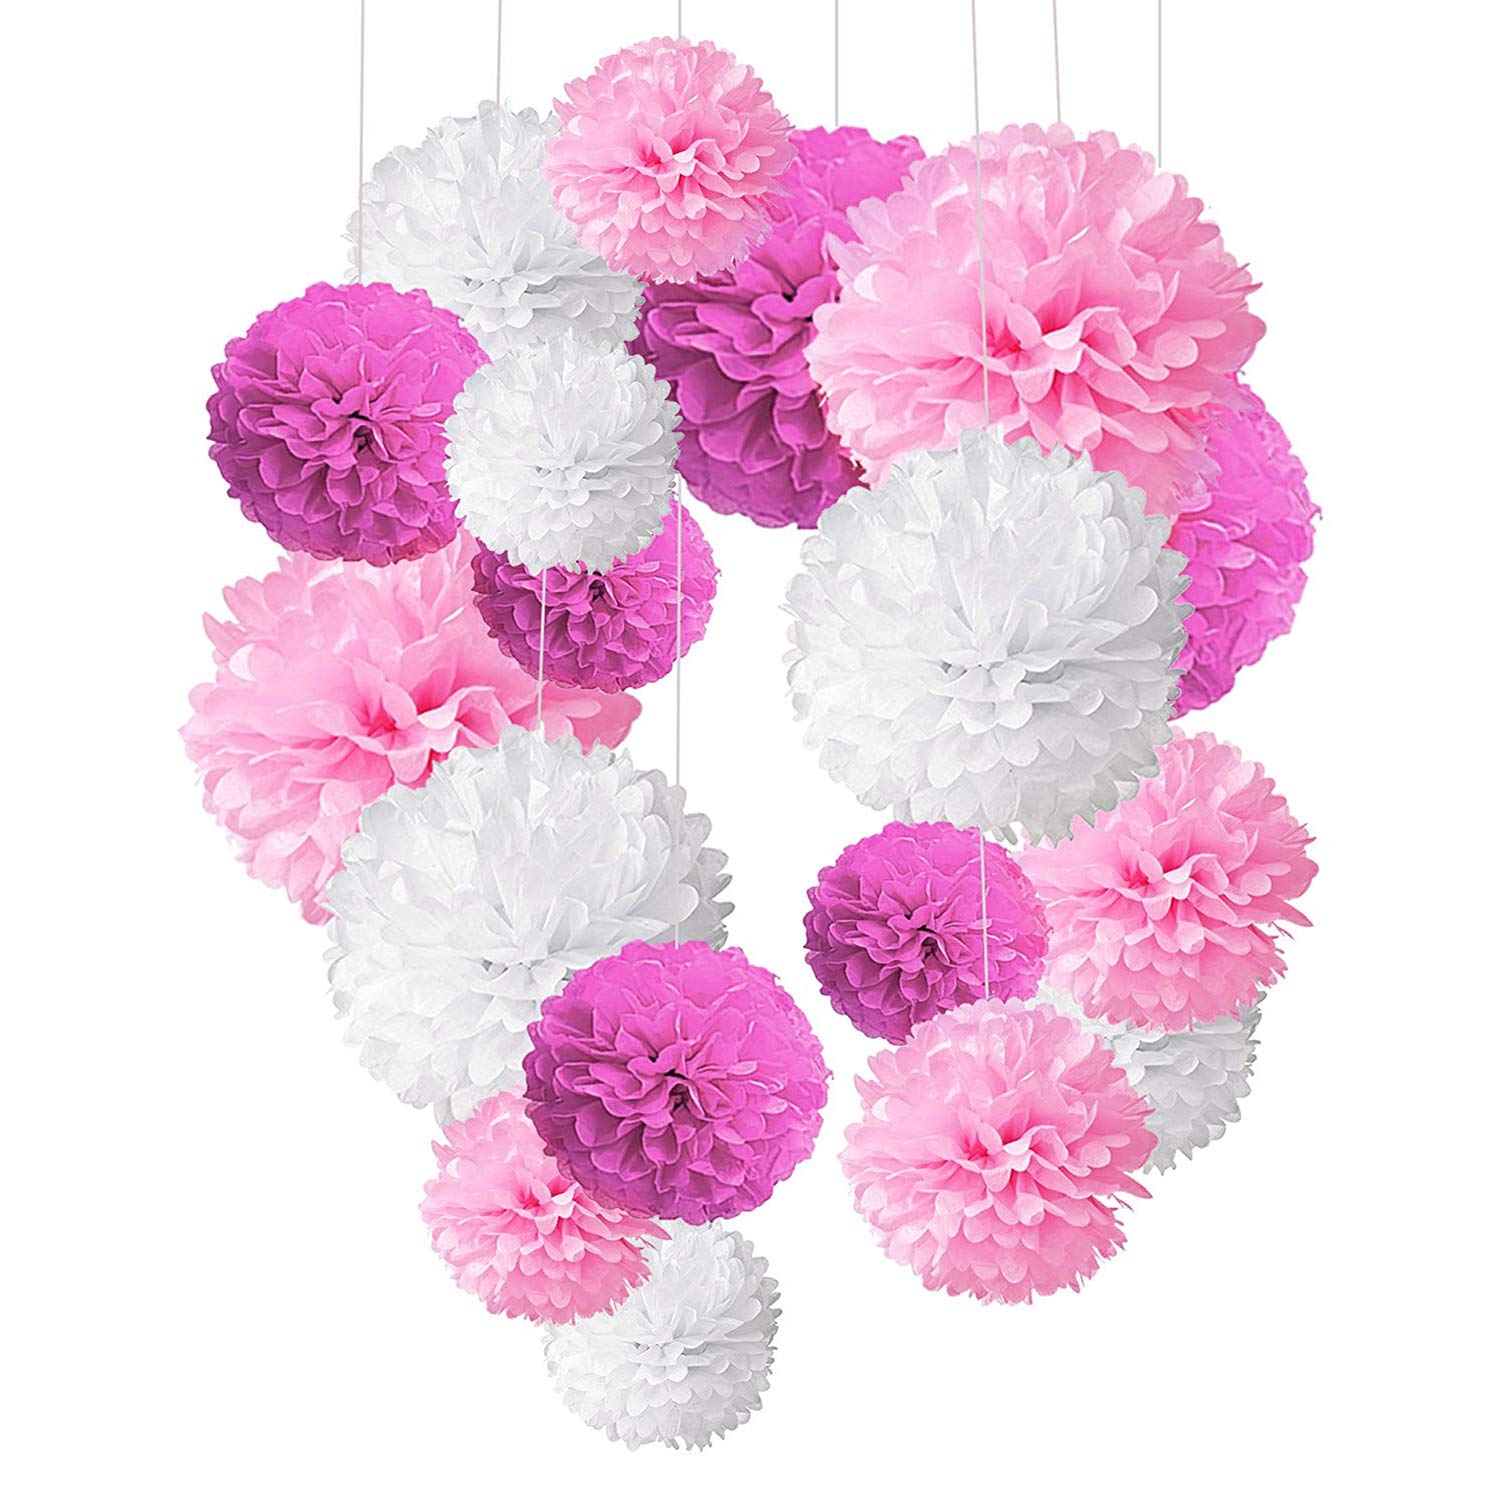 Alintor 18 Pcs Tissue Paper Pom poms, Pom Poms Flower White Pink Rose Red, Wedding, Baby Shower, Outdoor, Indoor, Birthday Party Hanging Decoration